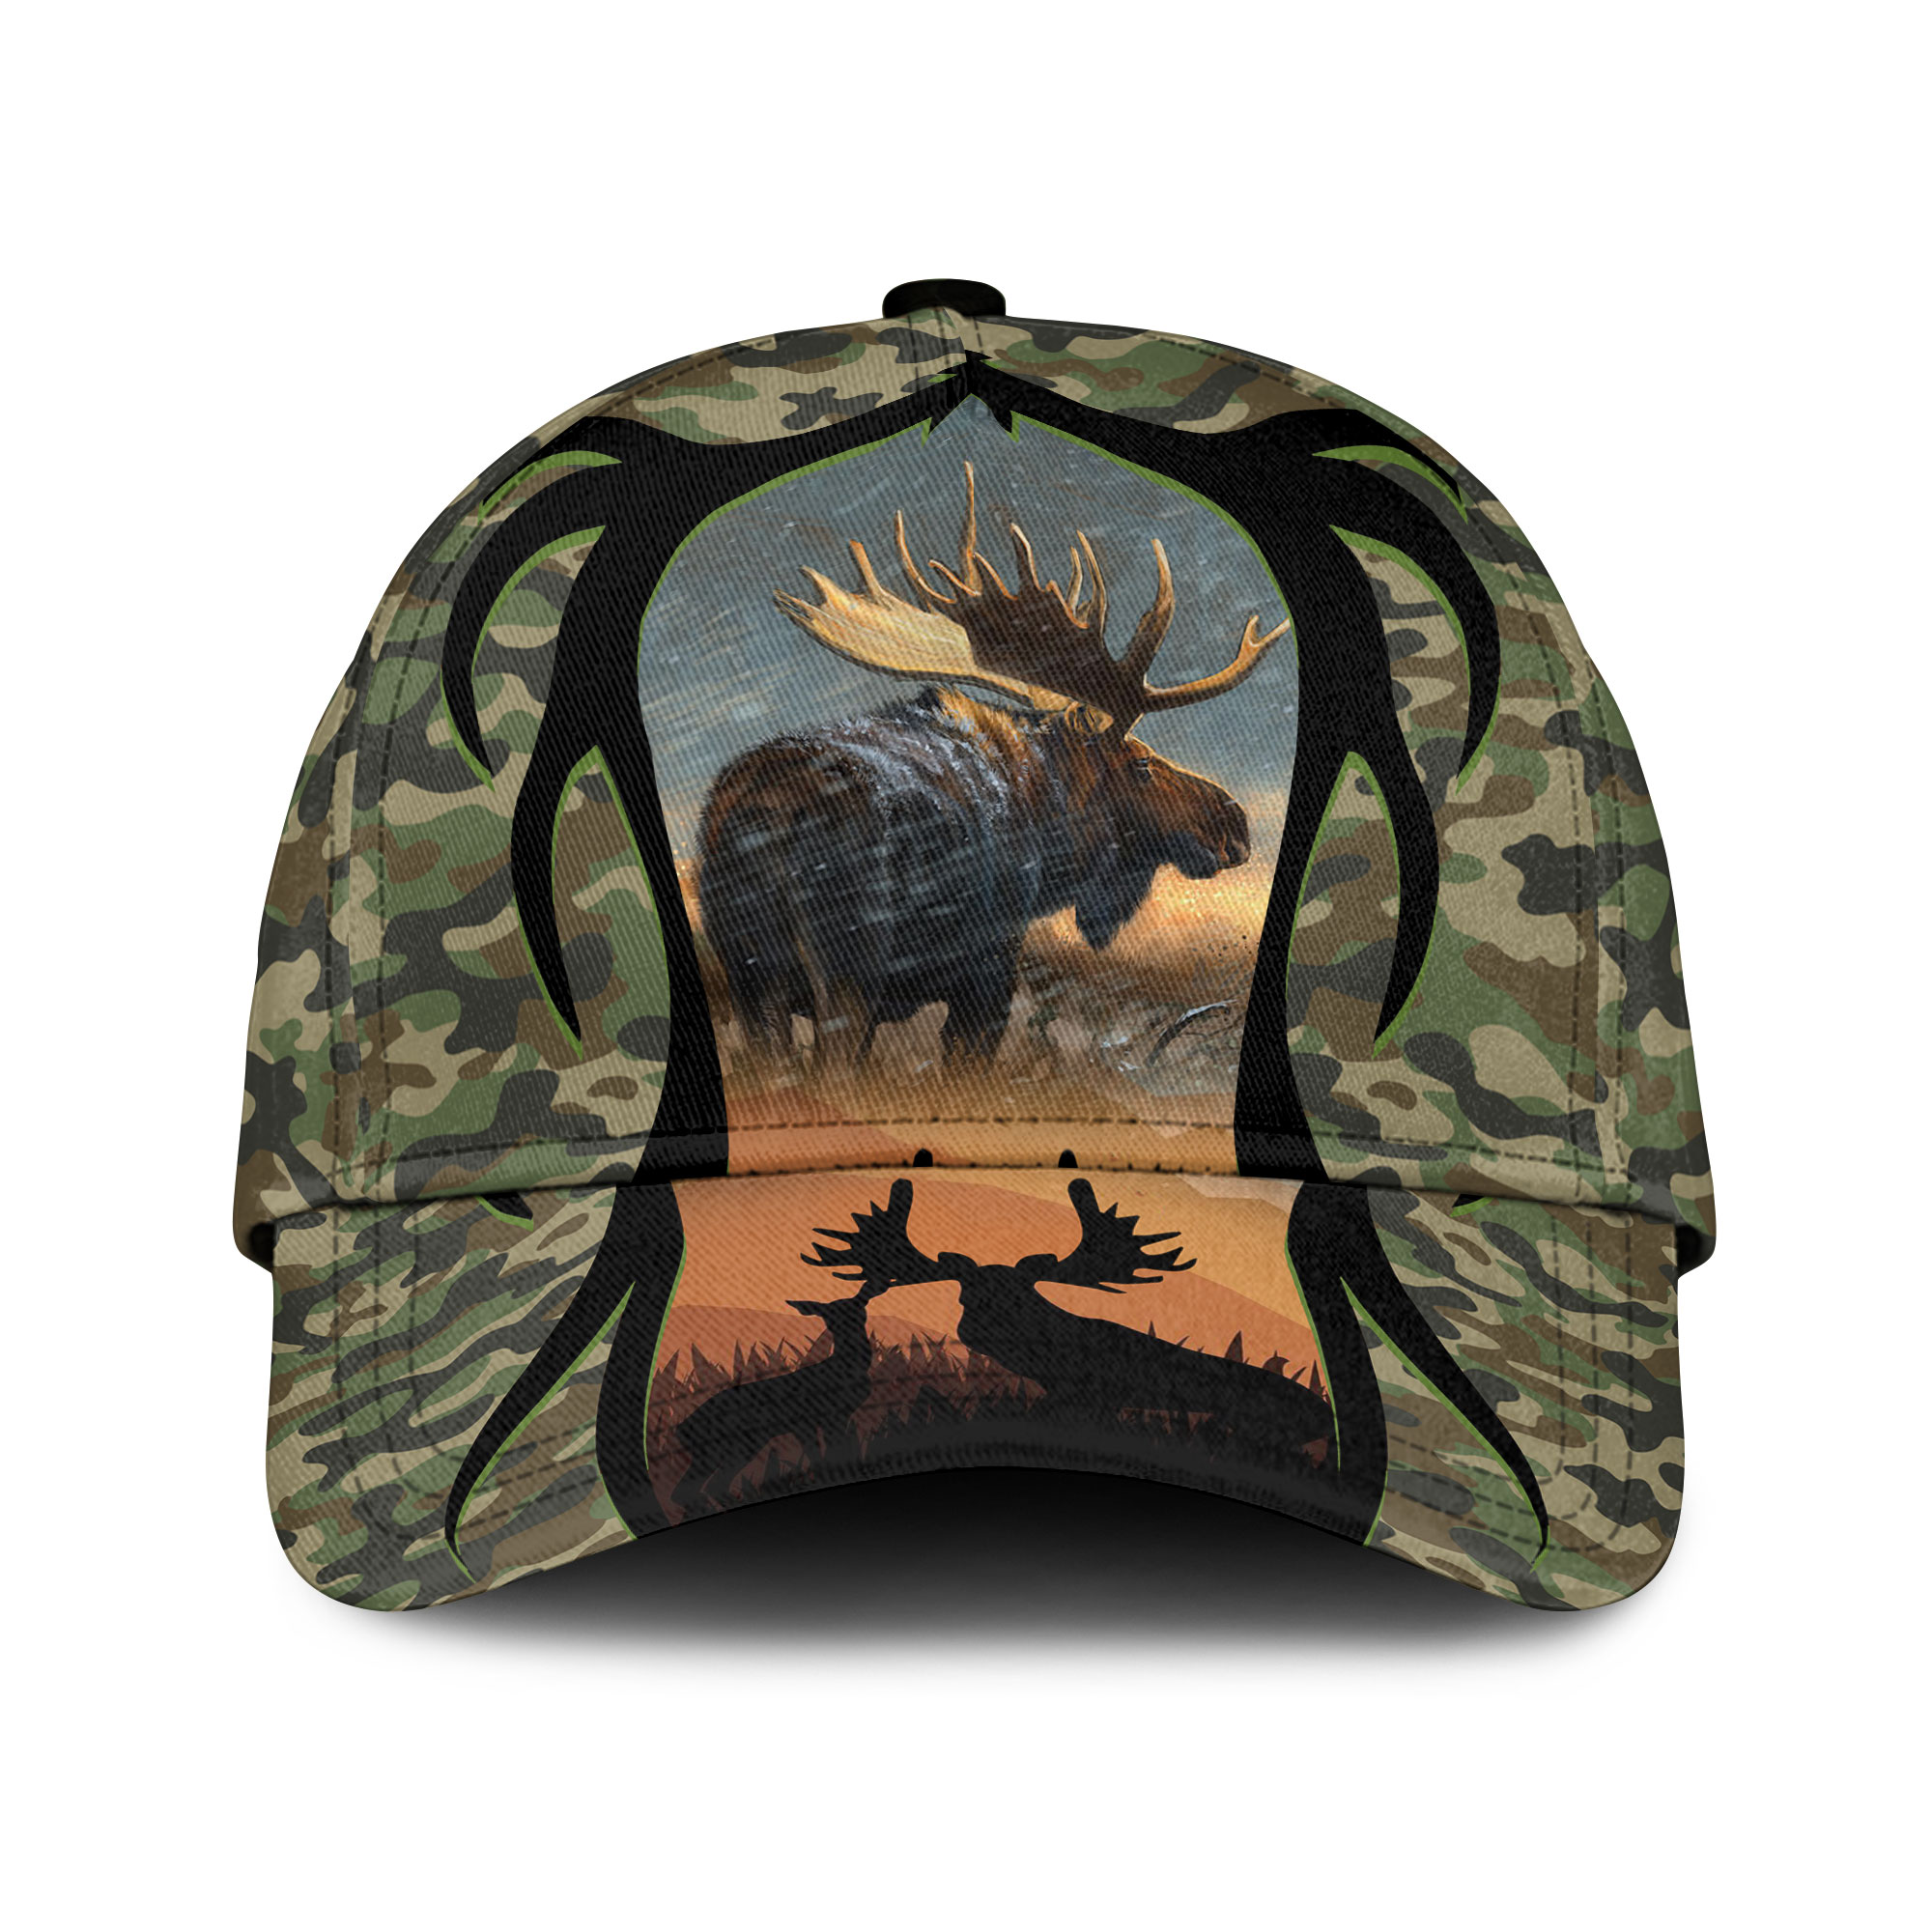 Love Moose Hunting Camouflage Sku 148 Classic Cap